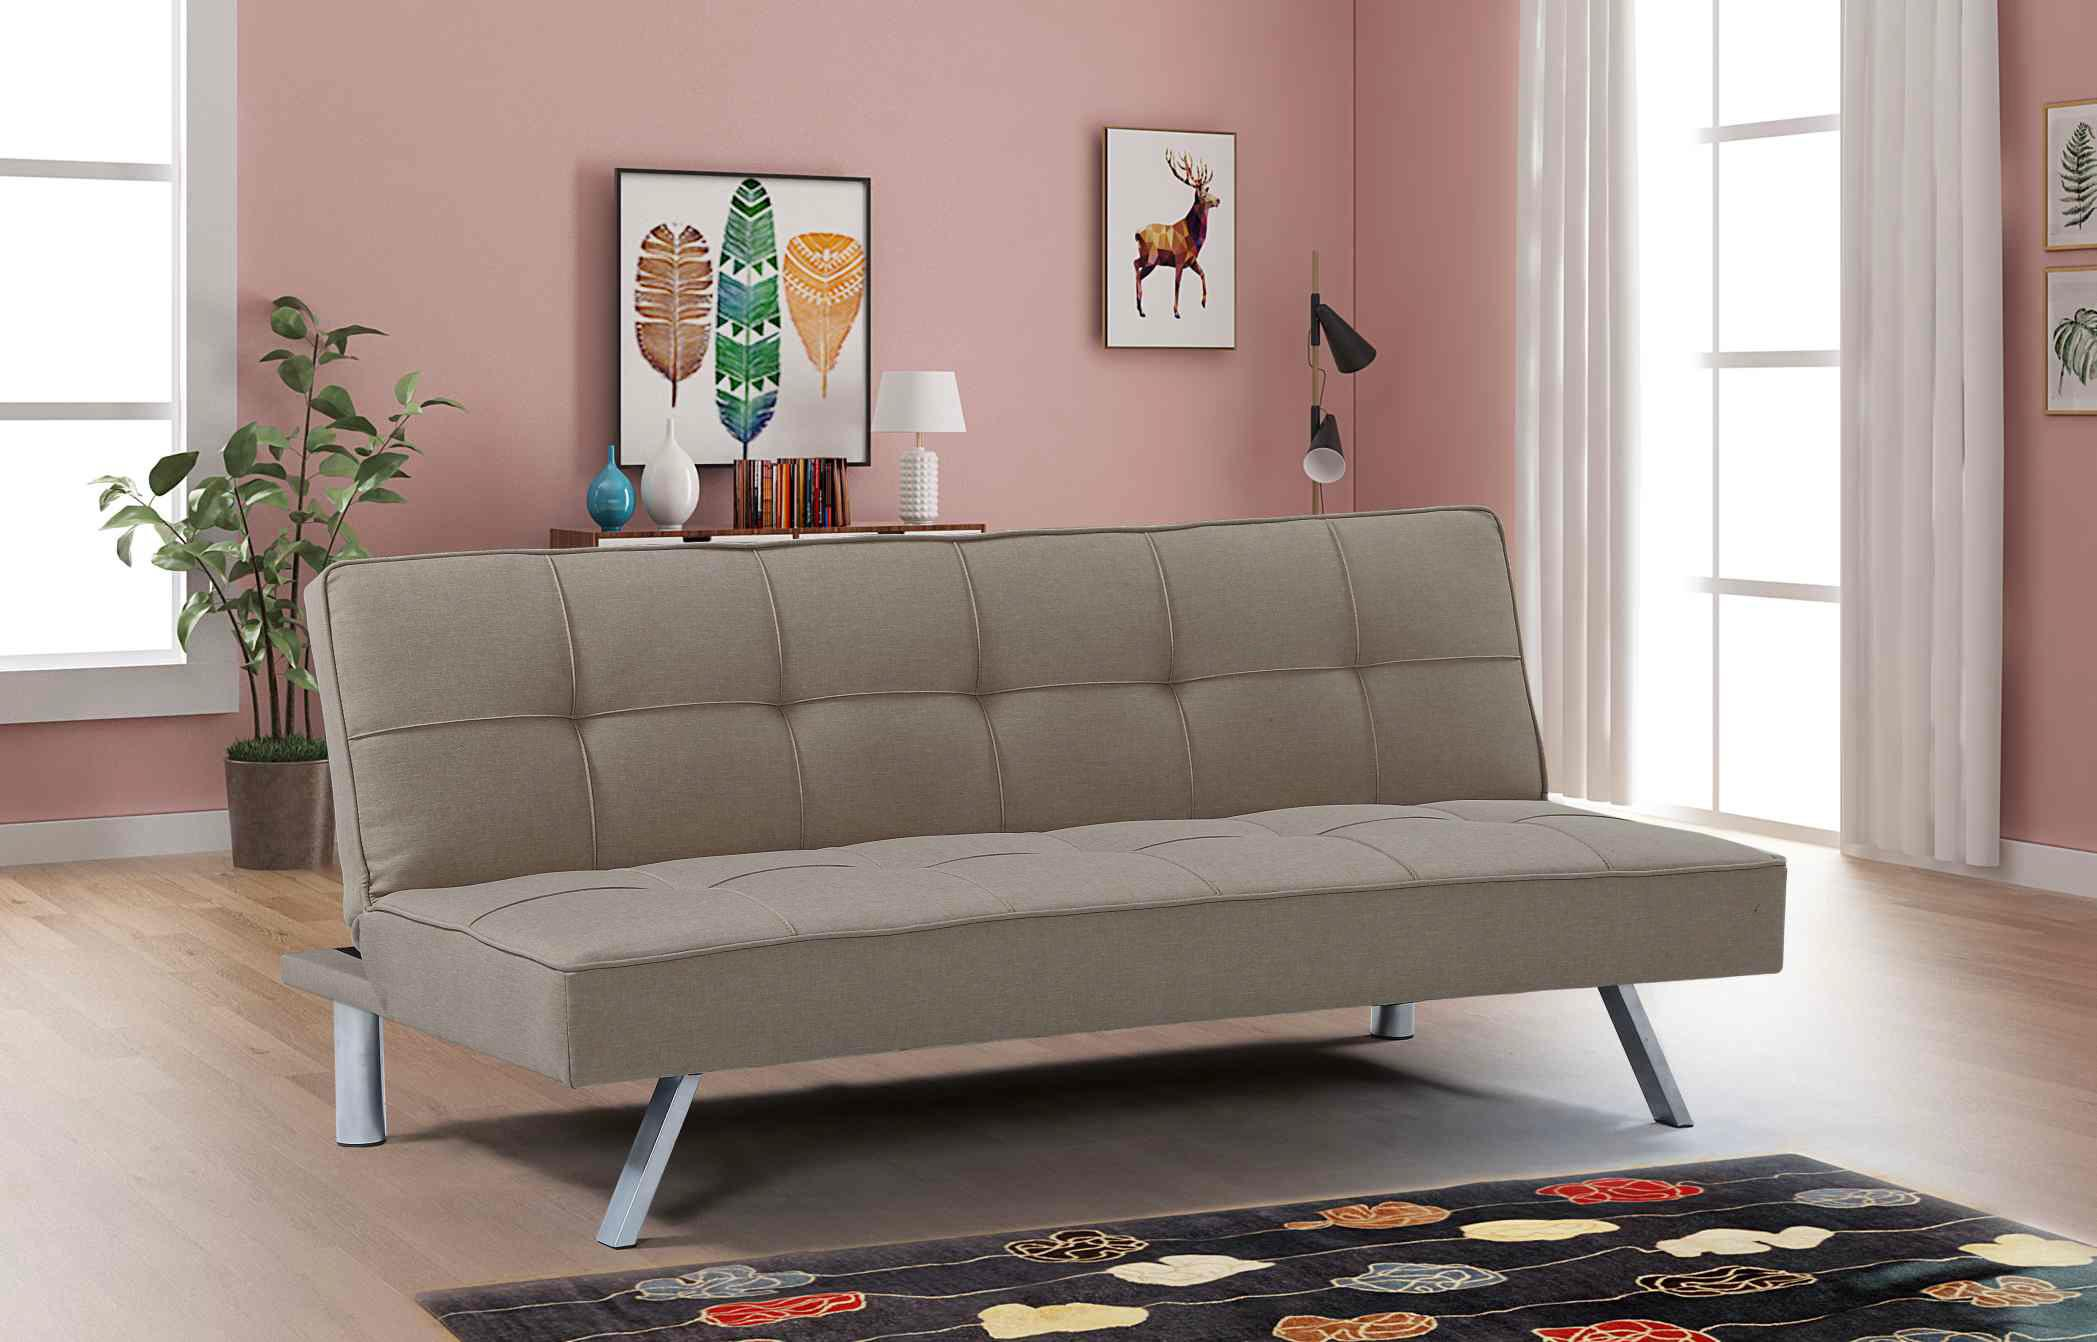 Product details of ihome agape modern sofa bed